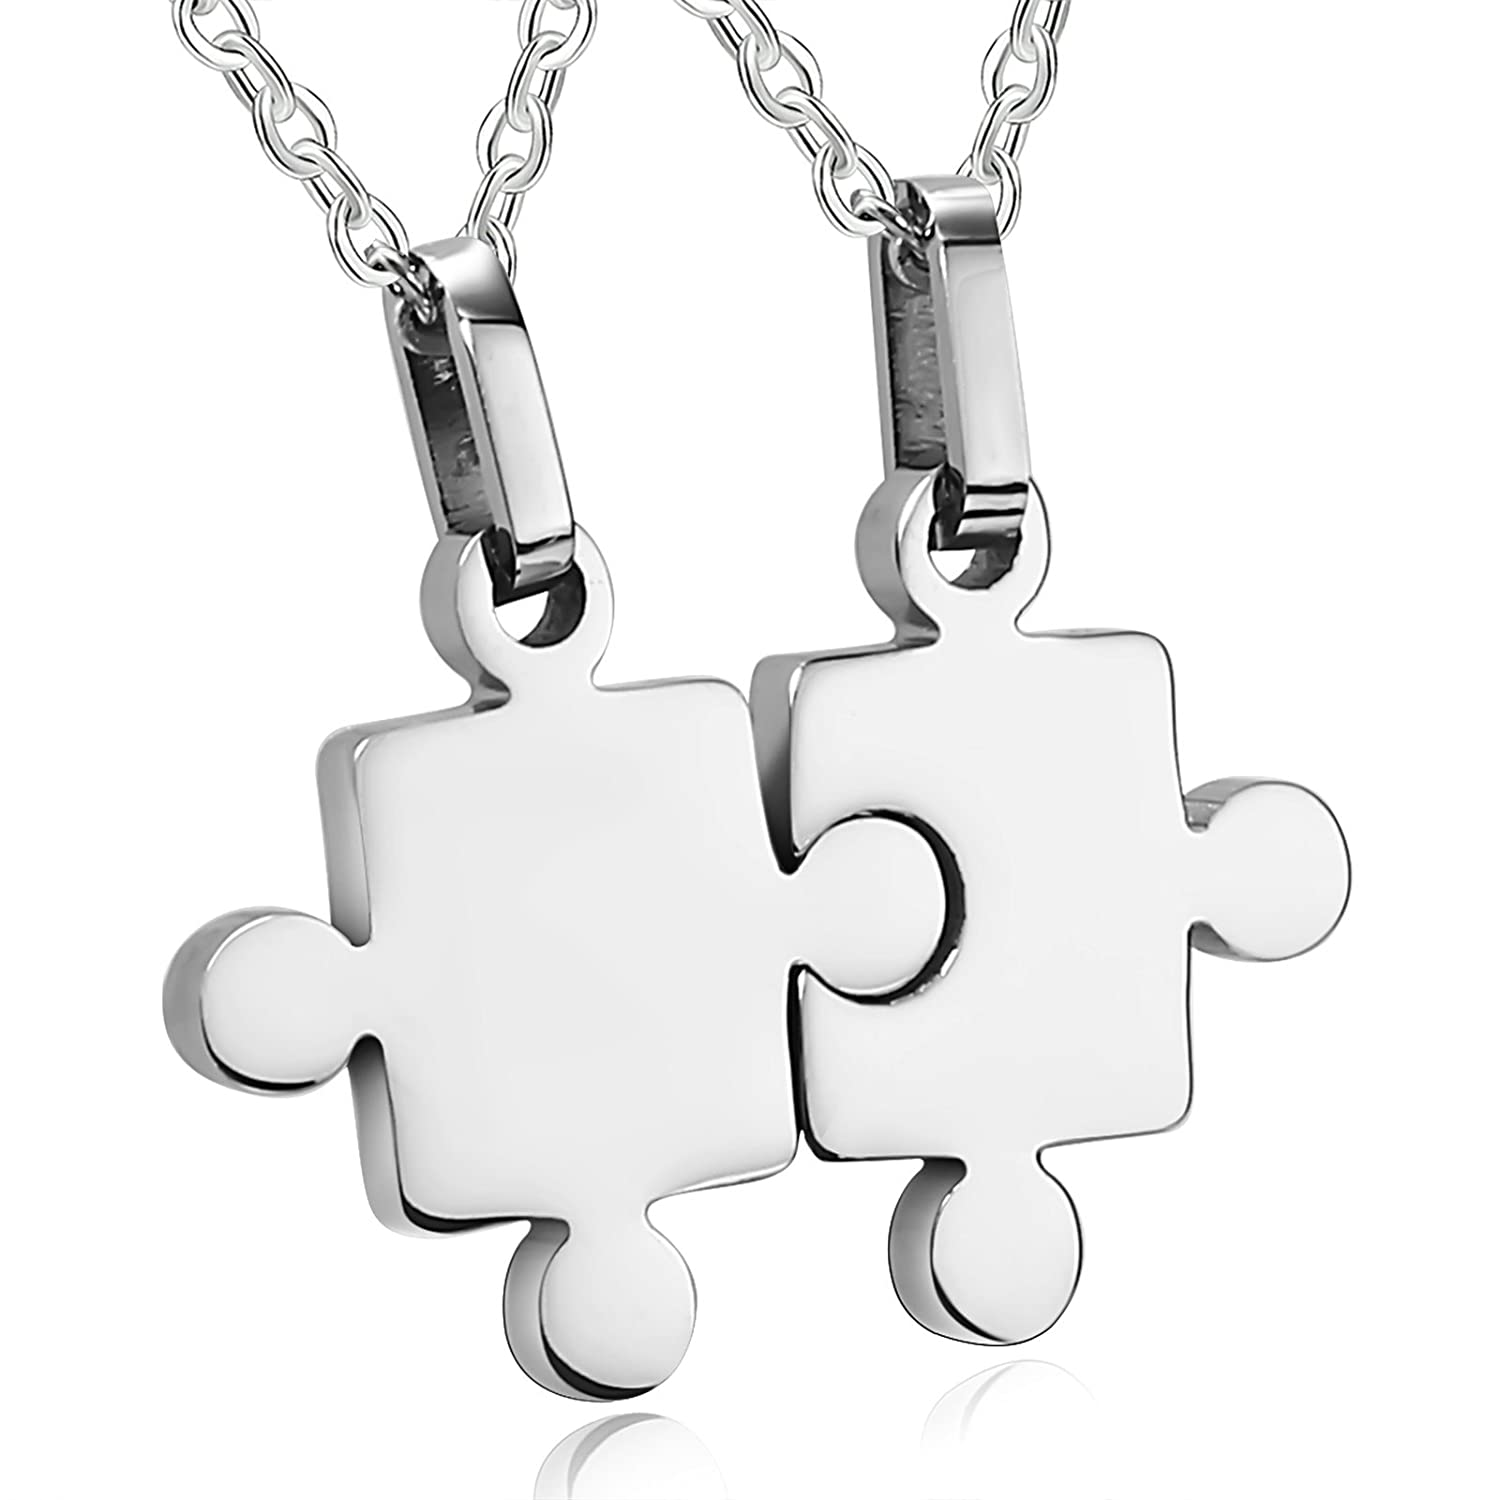 Adisaer Stainless Steel Pendant Necklace for Him and Her 2PCS Polished Puzzle Pieces Wedding Necklace Silver Great Gift for Christmas